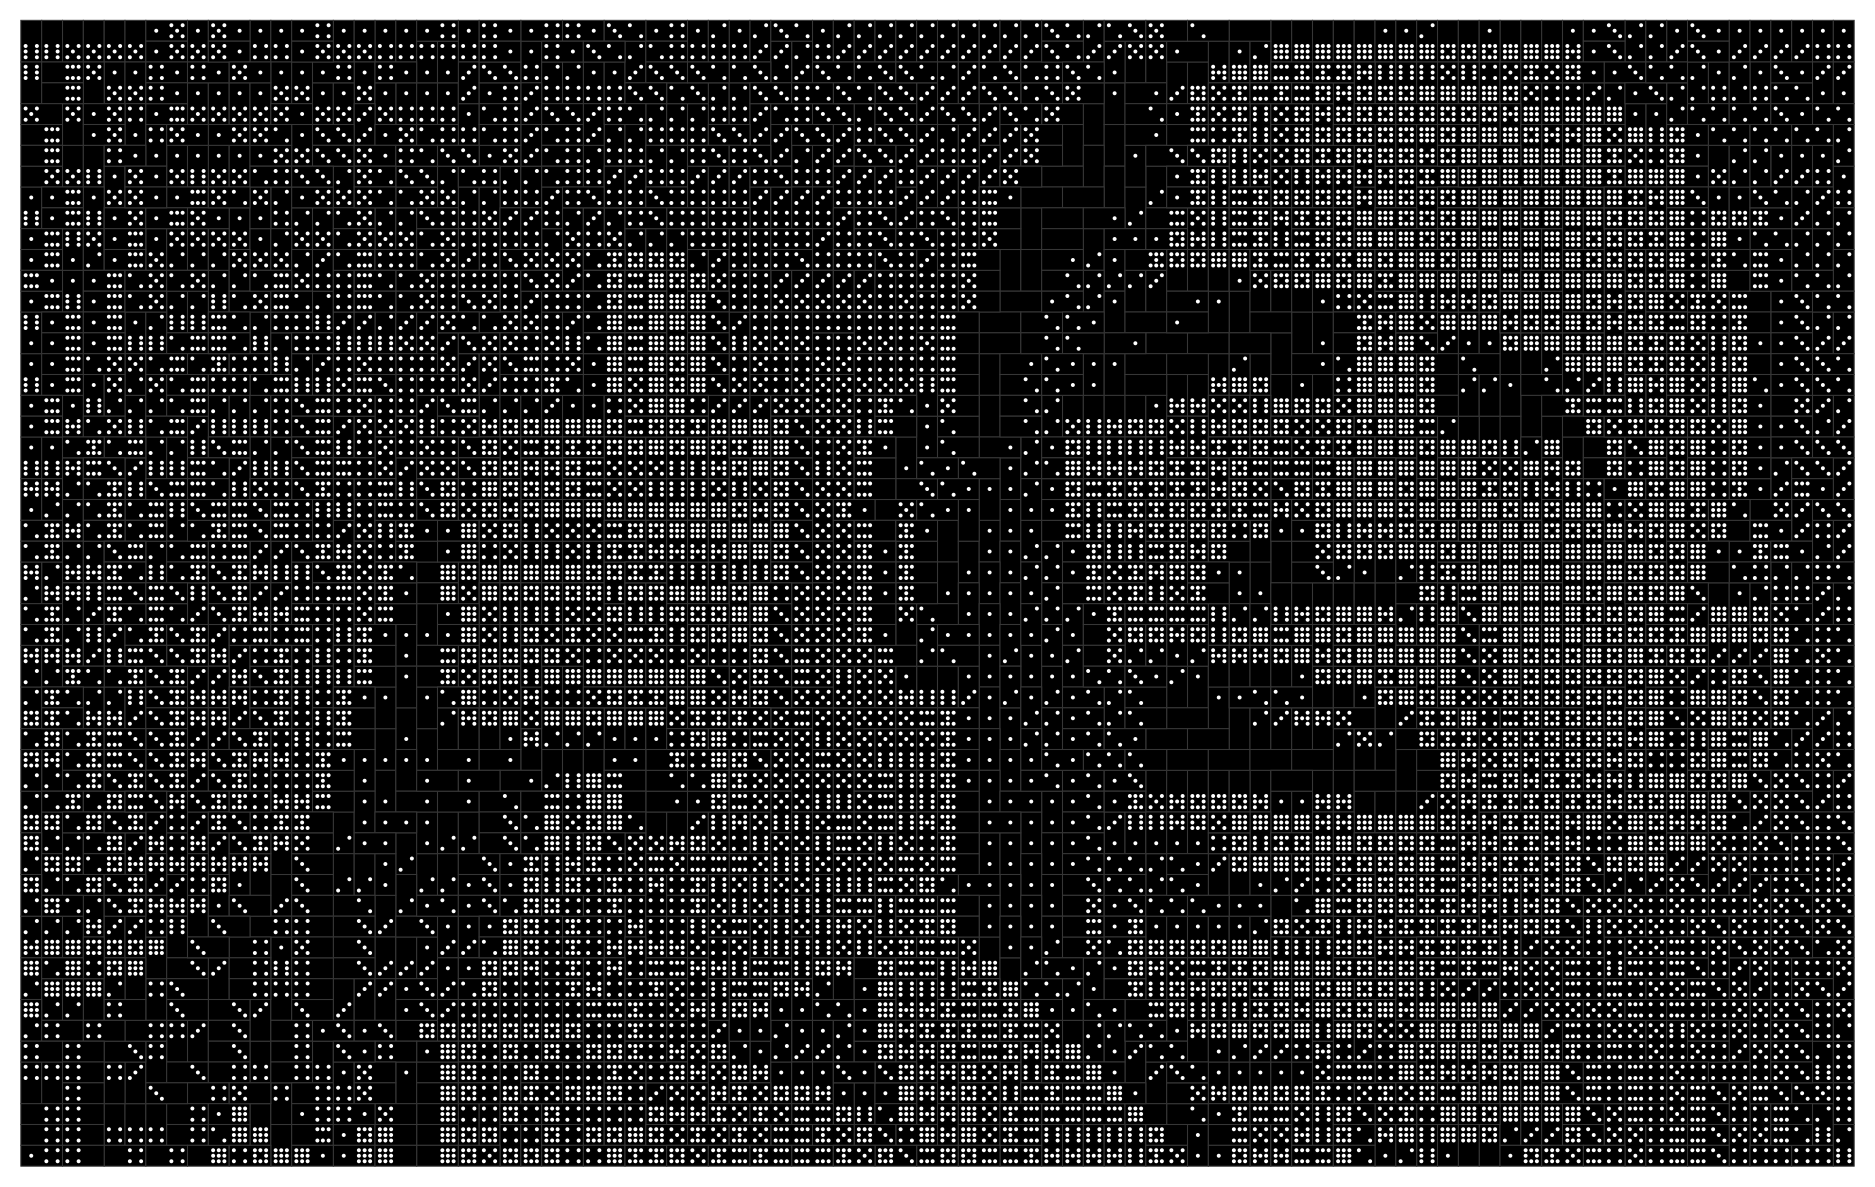 A portrait of Barack Obama using 44 sets of double-9 dominoes